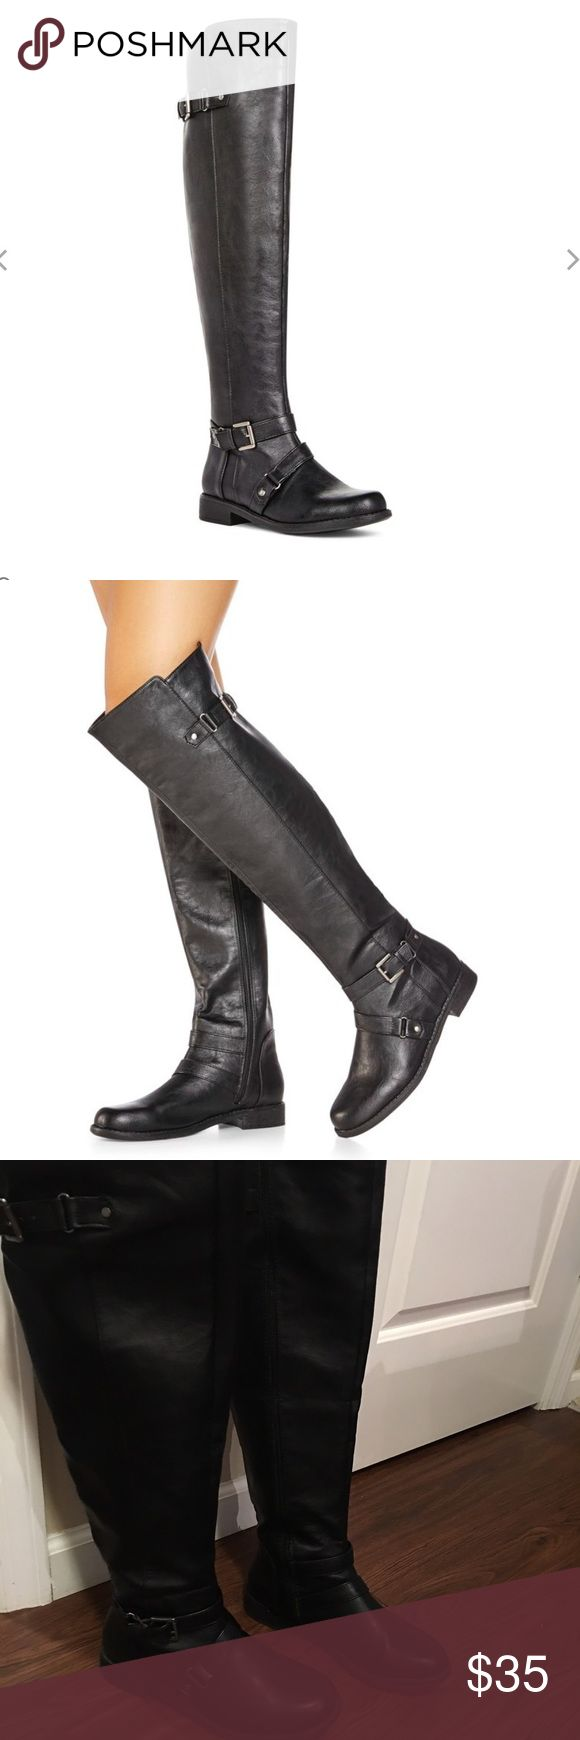 Black leather knee high boots Size 8 JustFab Shoes Ankle Boots & Booties